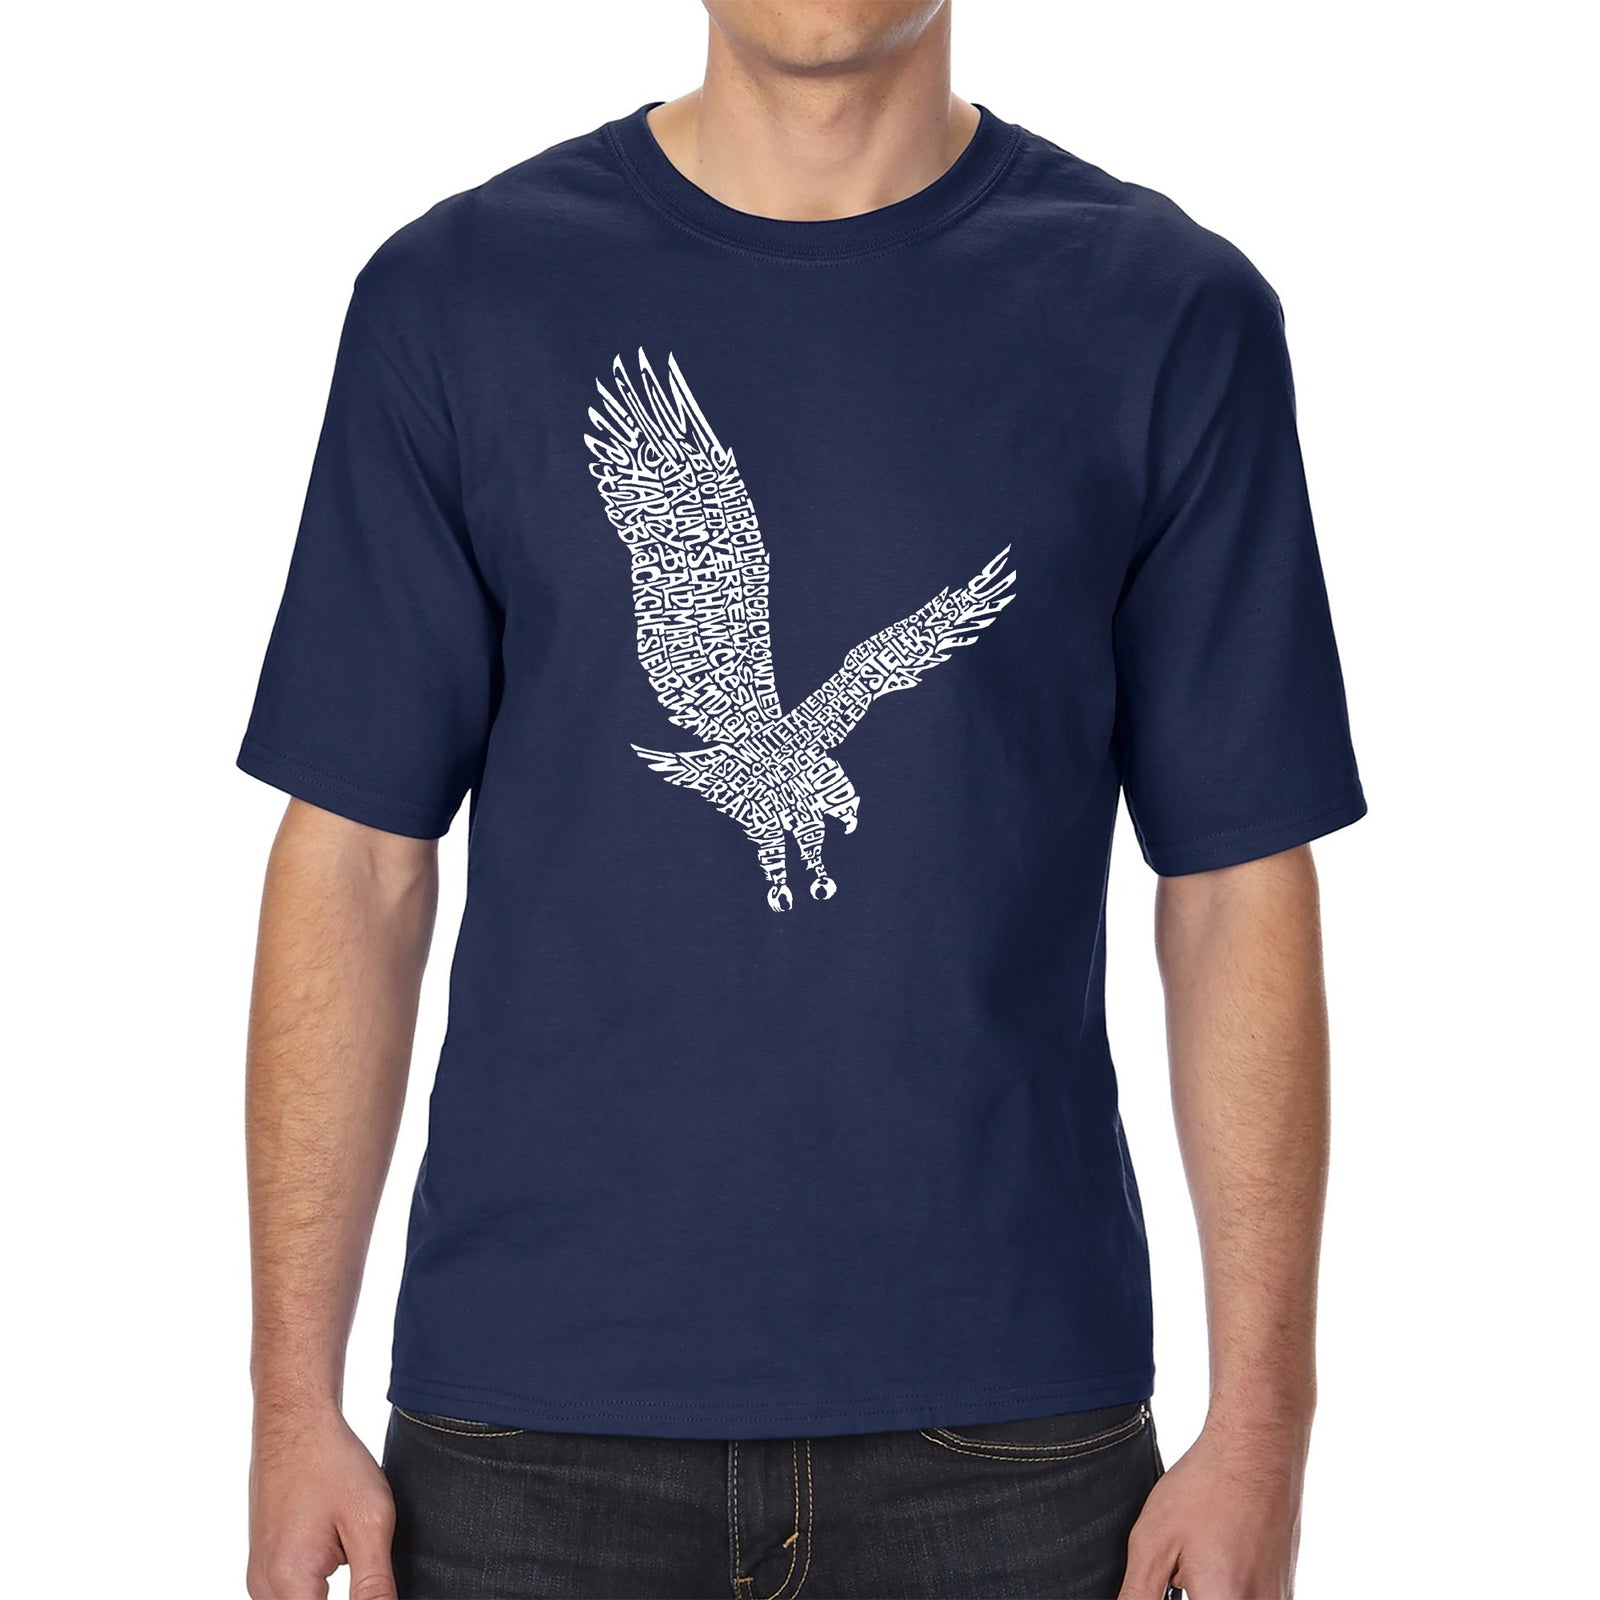 Men's Tall and Long Word Art T-shirt - Eagle